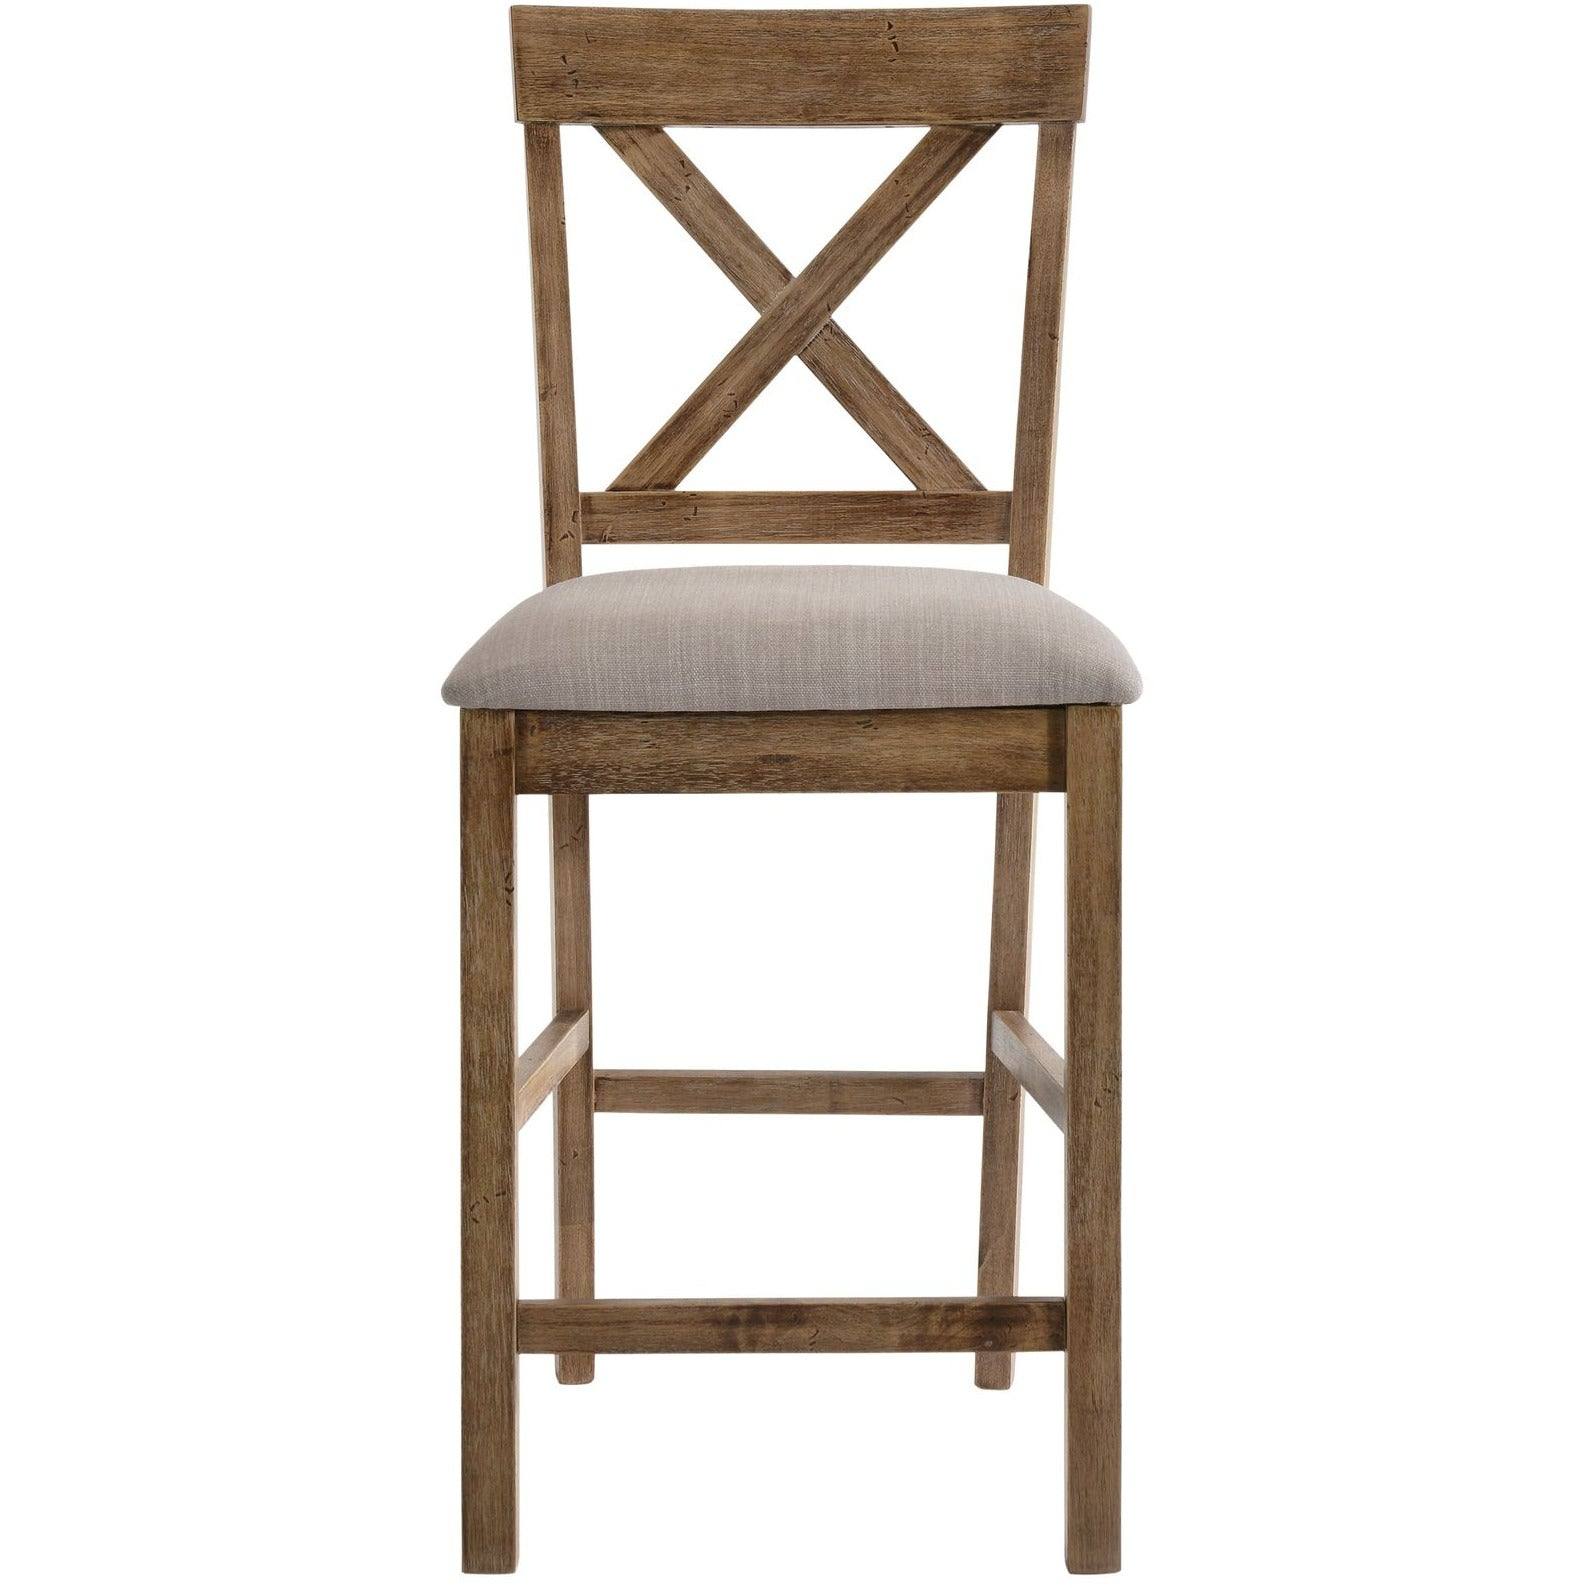 X-Shaped Back Counter Height Chair in Tan Linen & Weathered Oak - Set Of 2